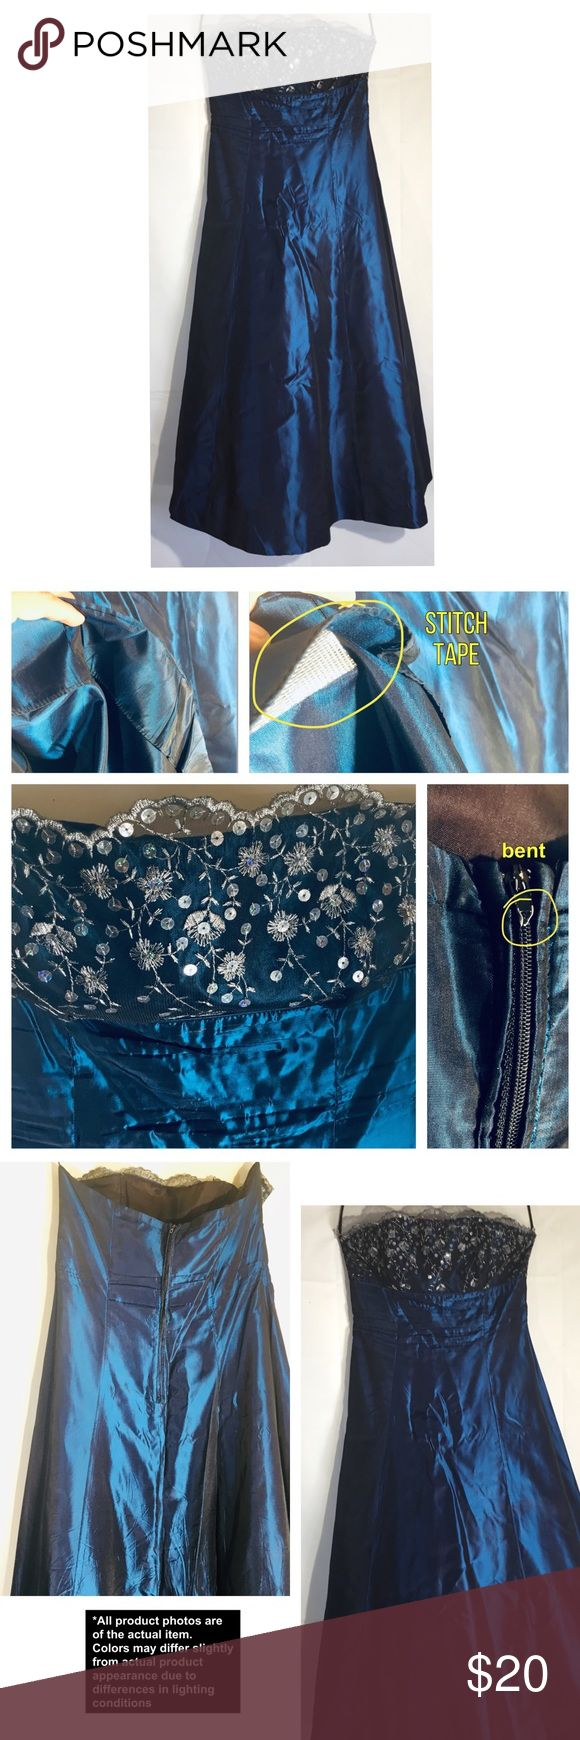 DONATED Good Condition// This dress is p…